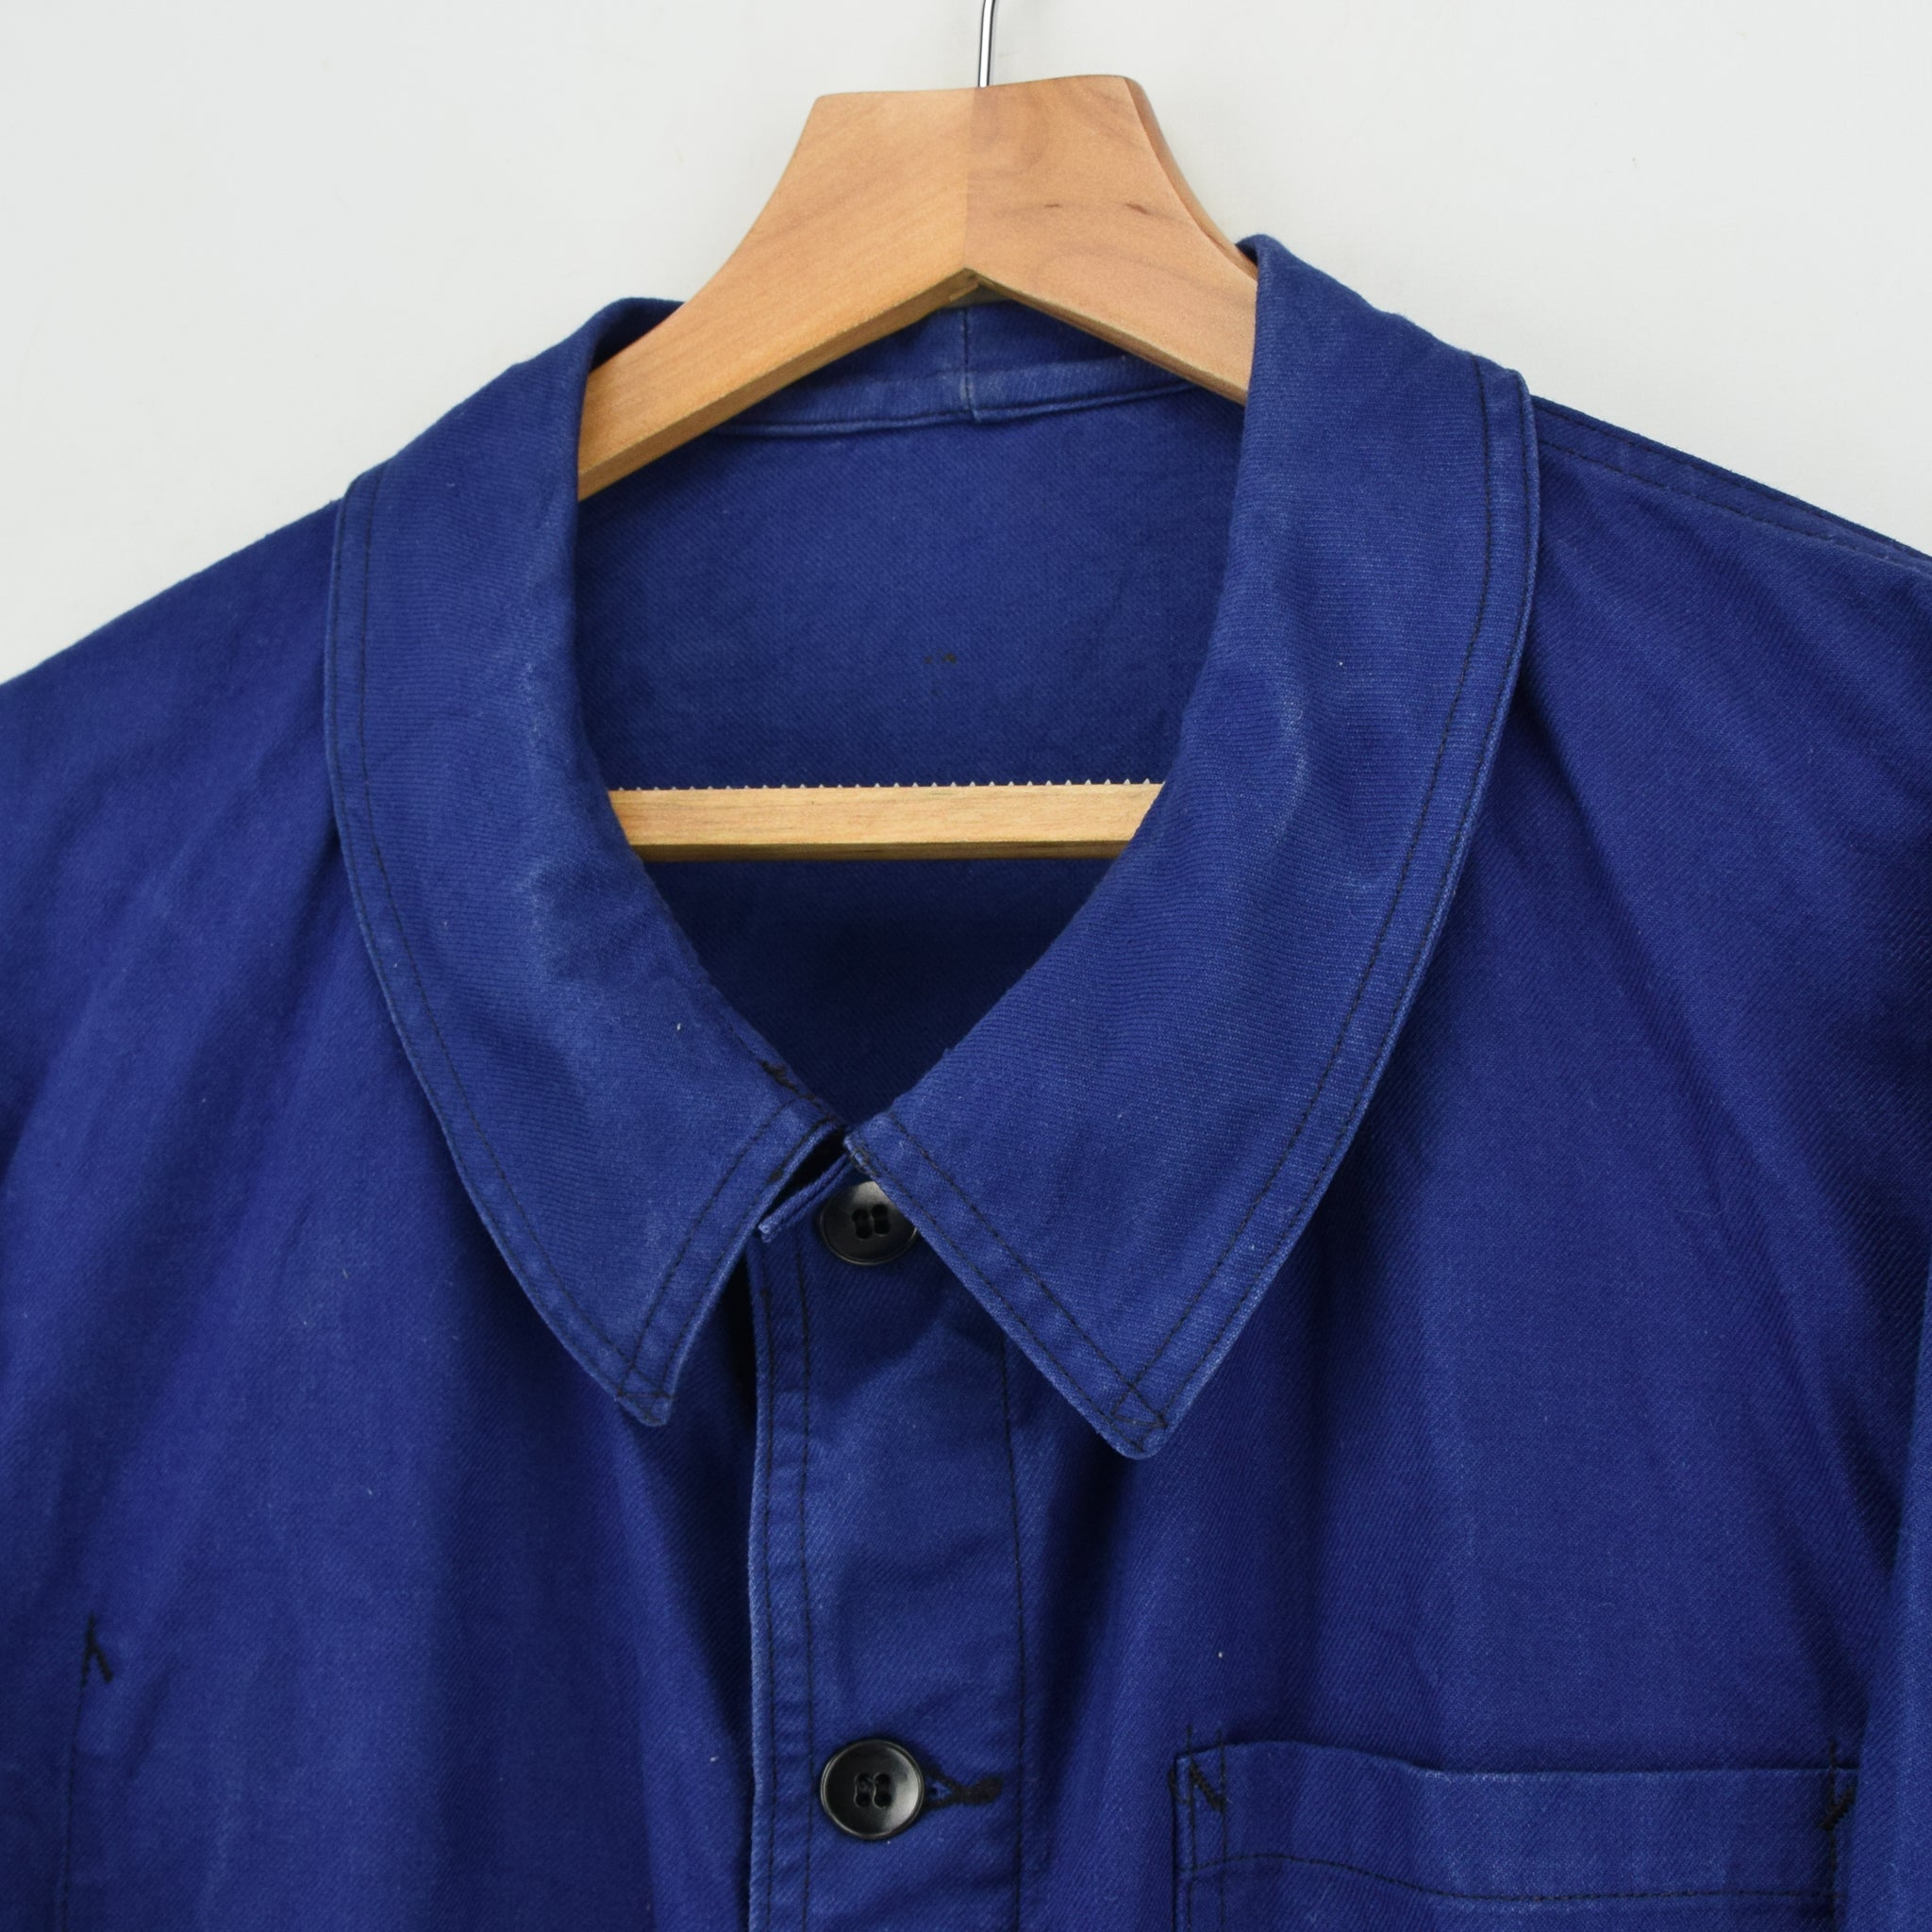 Vintage Indigo Blue French Worker Sanforized Cotton Chore Jacket L collar